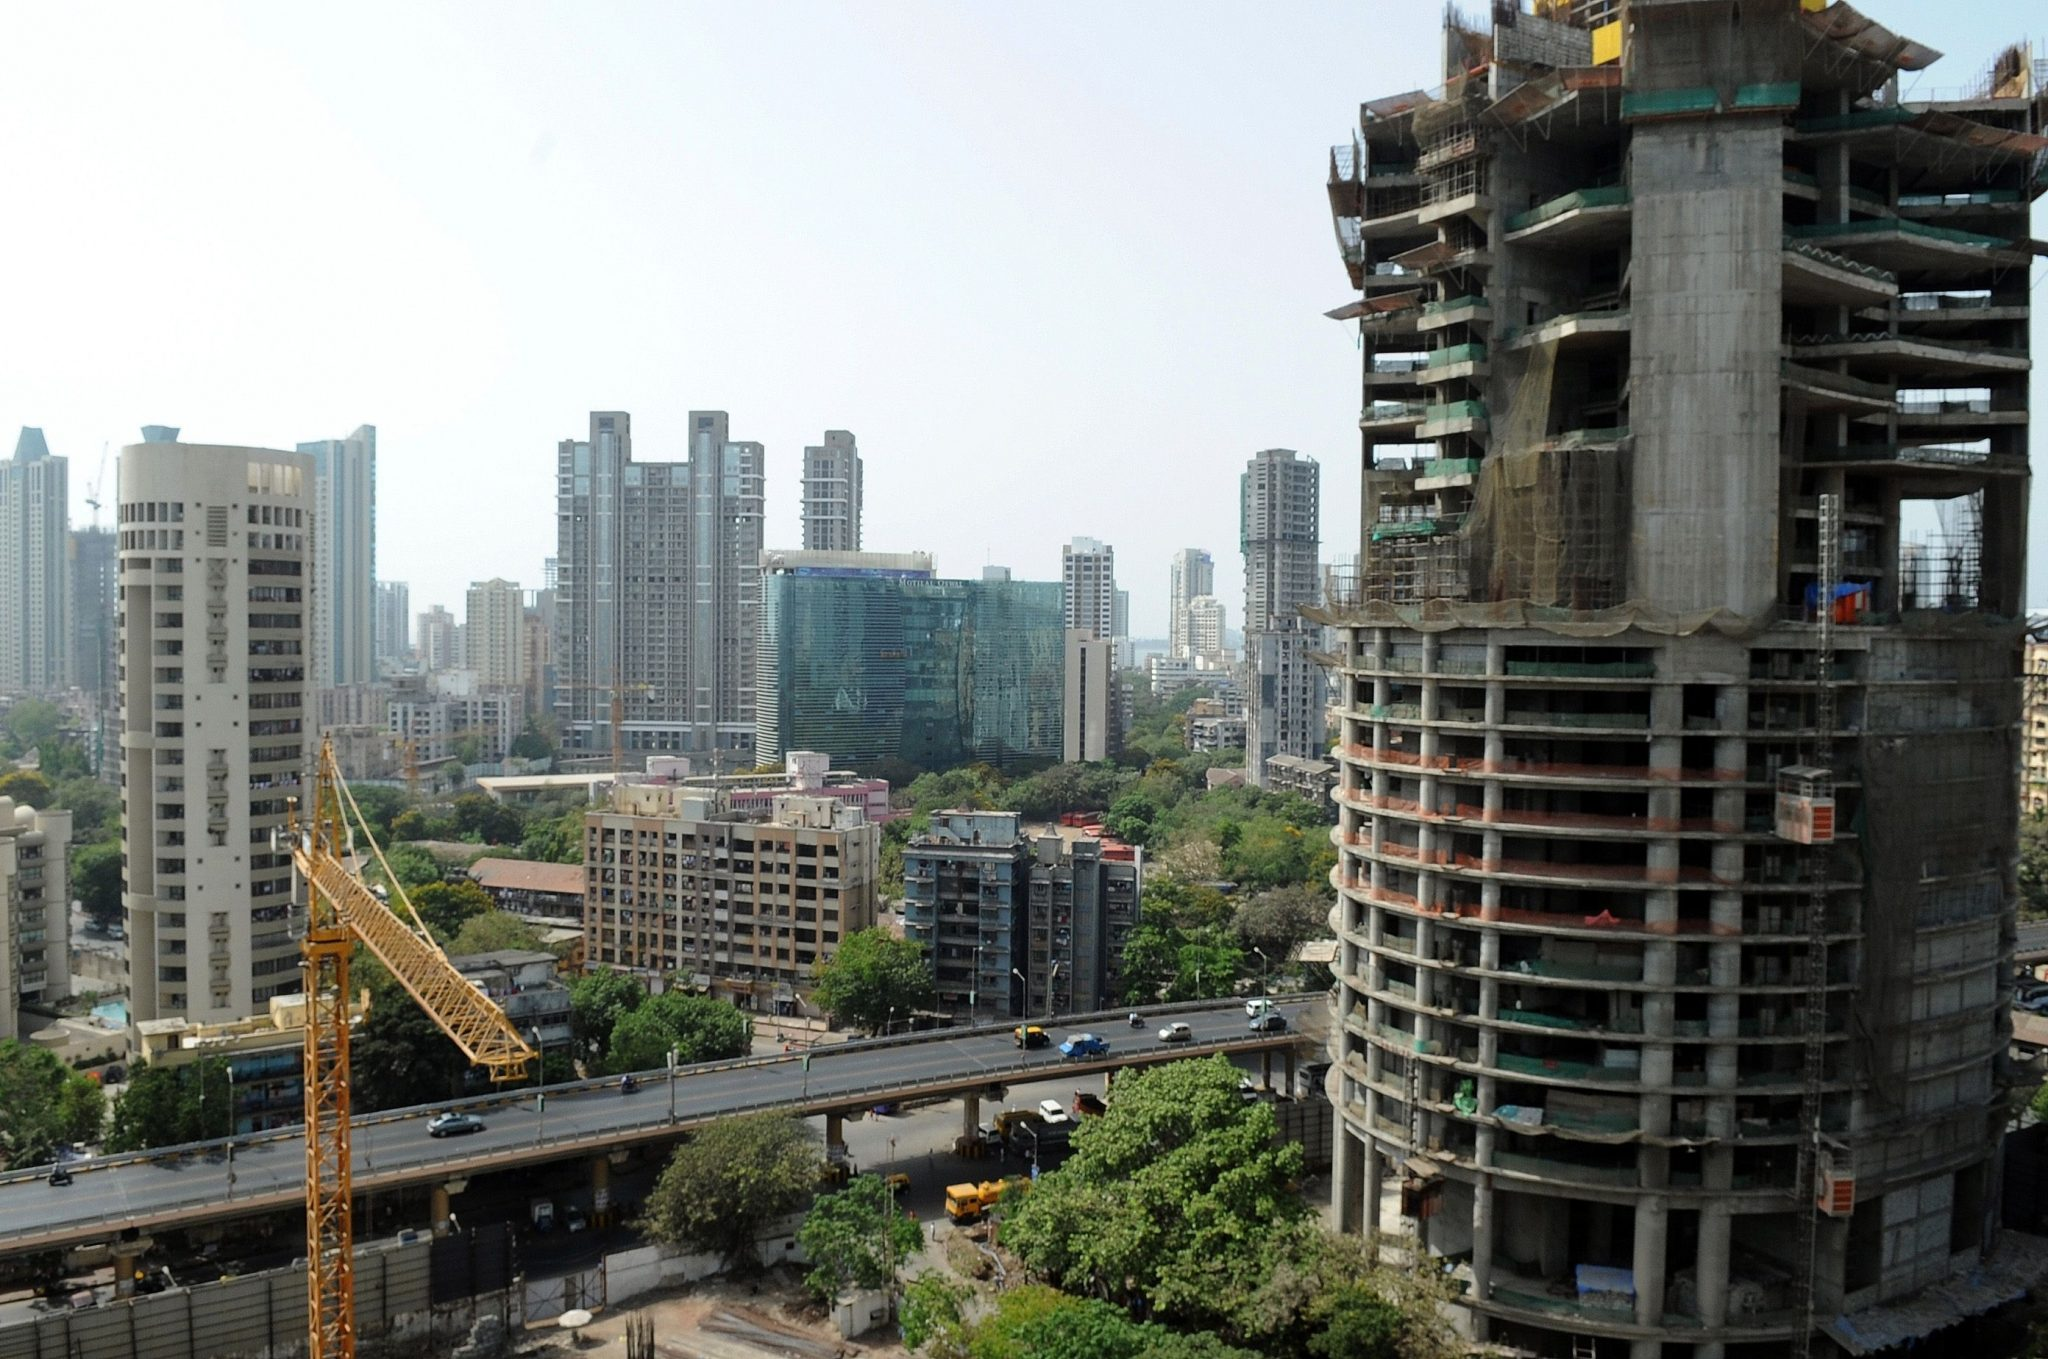 India's states: a silver lining amid economic gloom